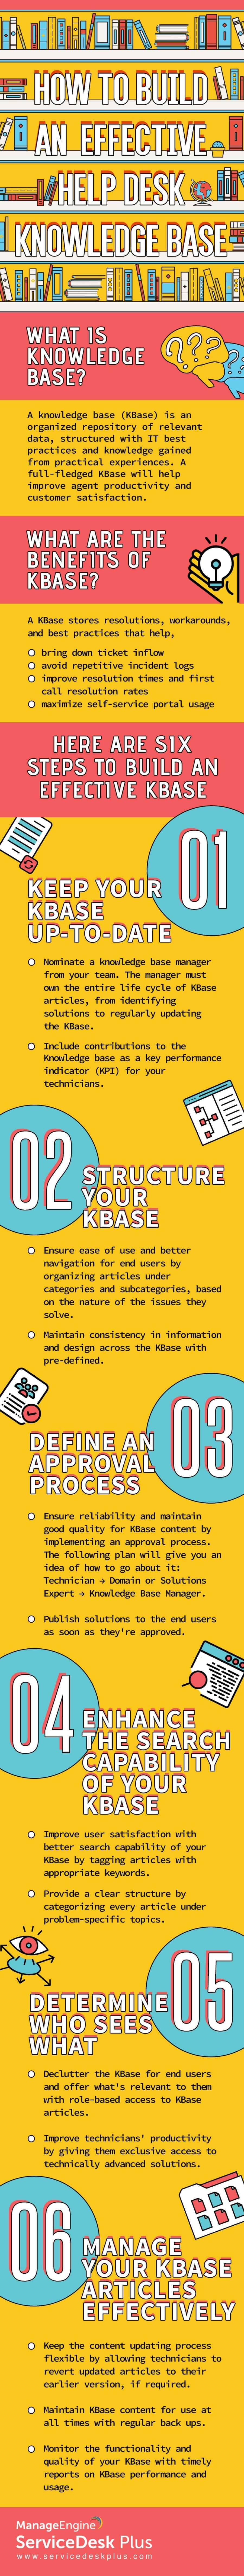 Build help desk knowledge base (KBase) infographic